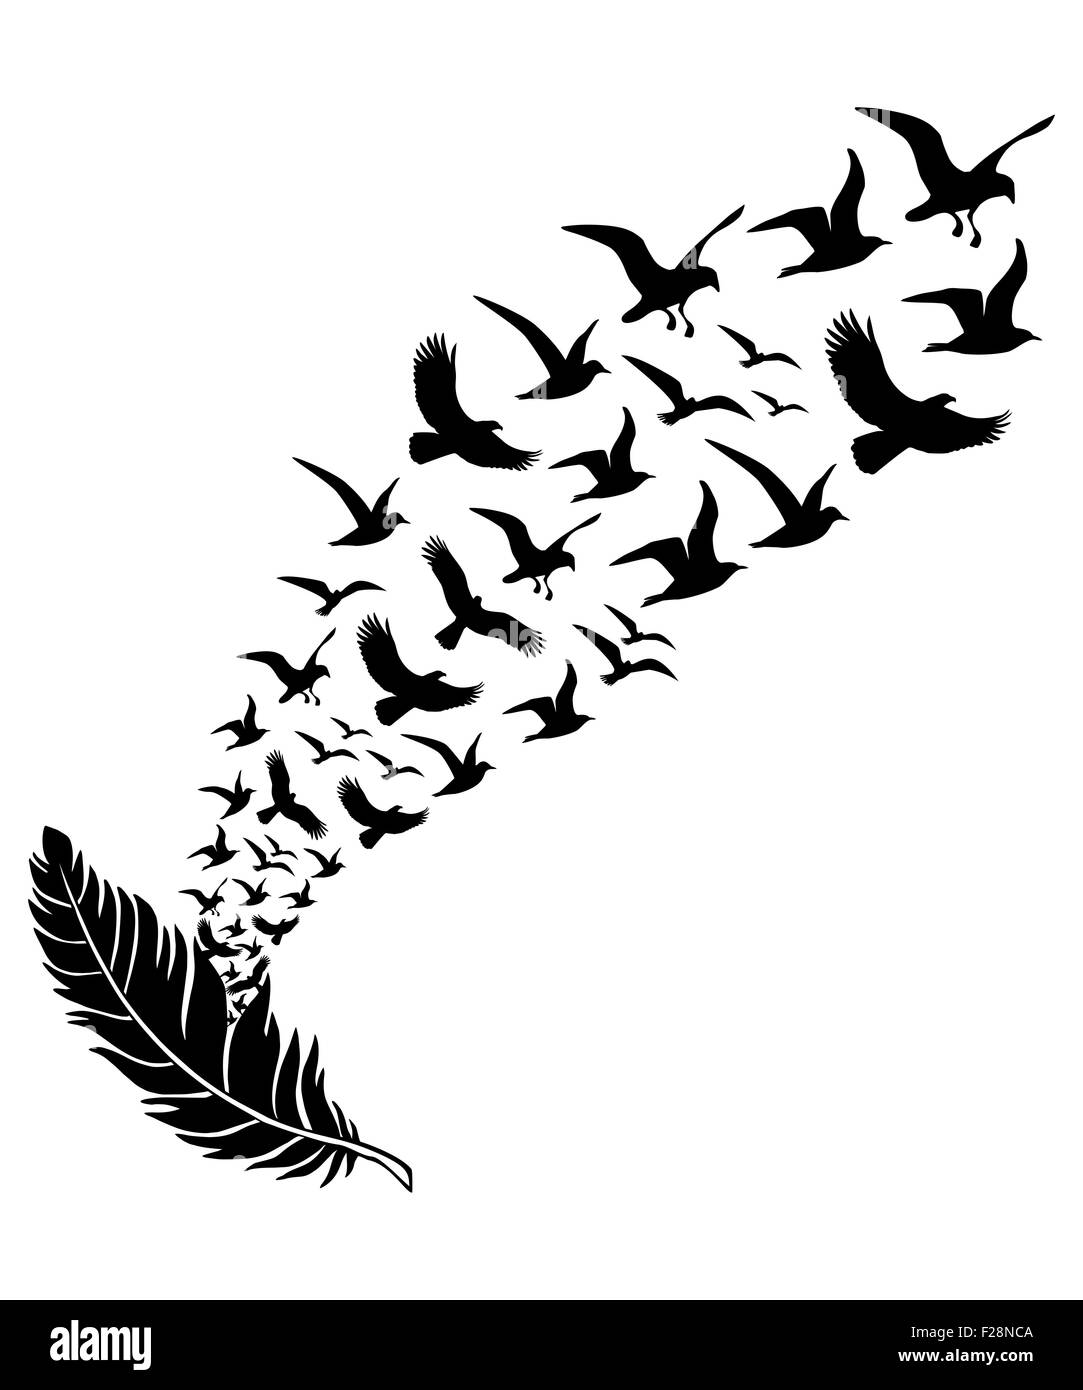 Stock Photo Feathers With Flying Birds Vector Illustration 87473578